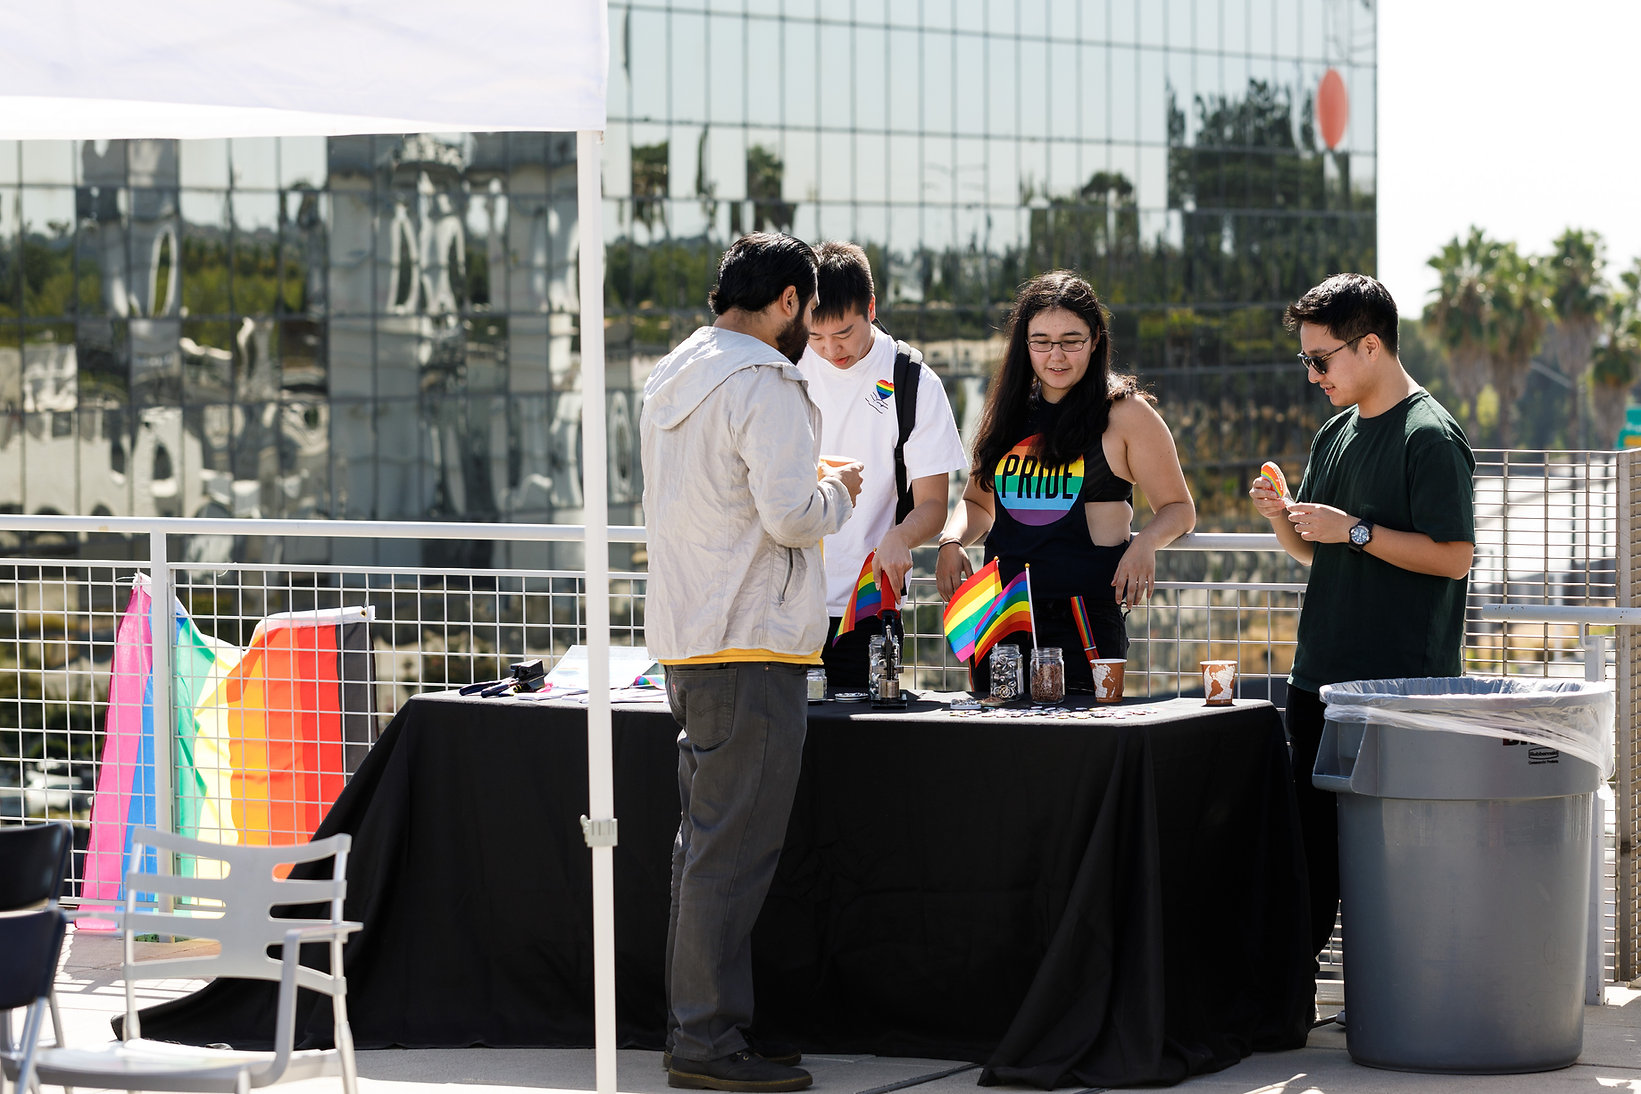 National Coming Out Day and Rainbow Flag Raising Ceremony held at ArtCenter College of Design South Campus rooftop